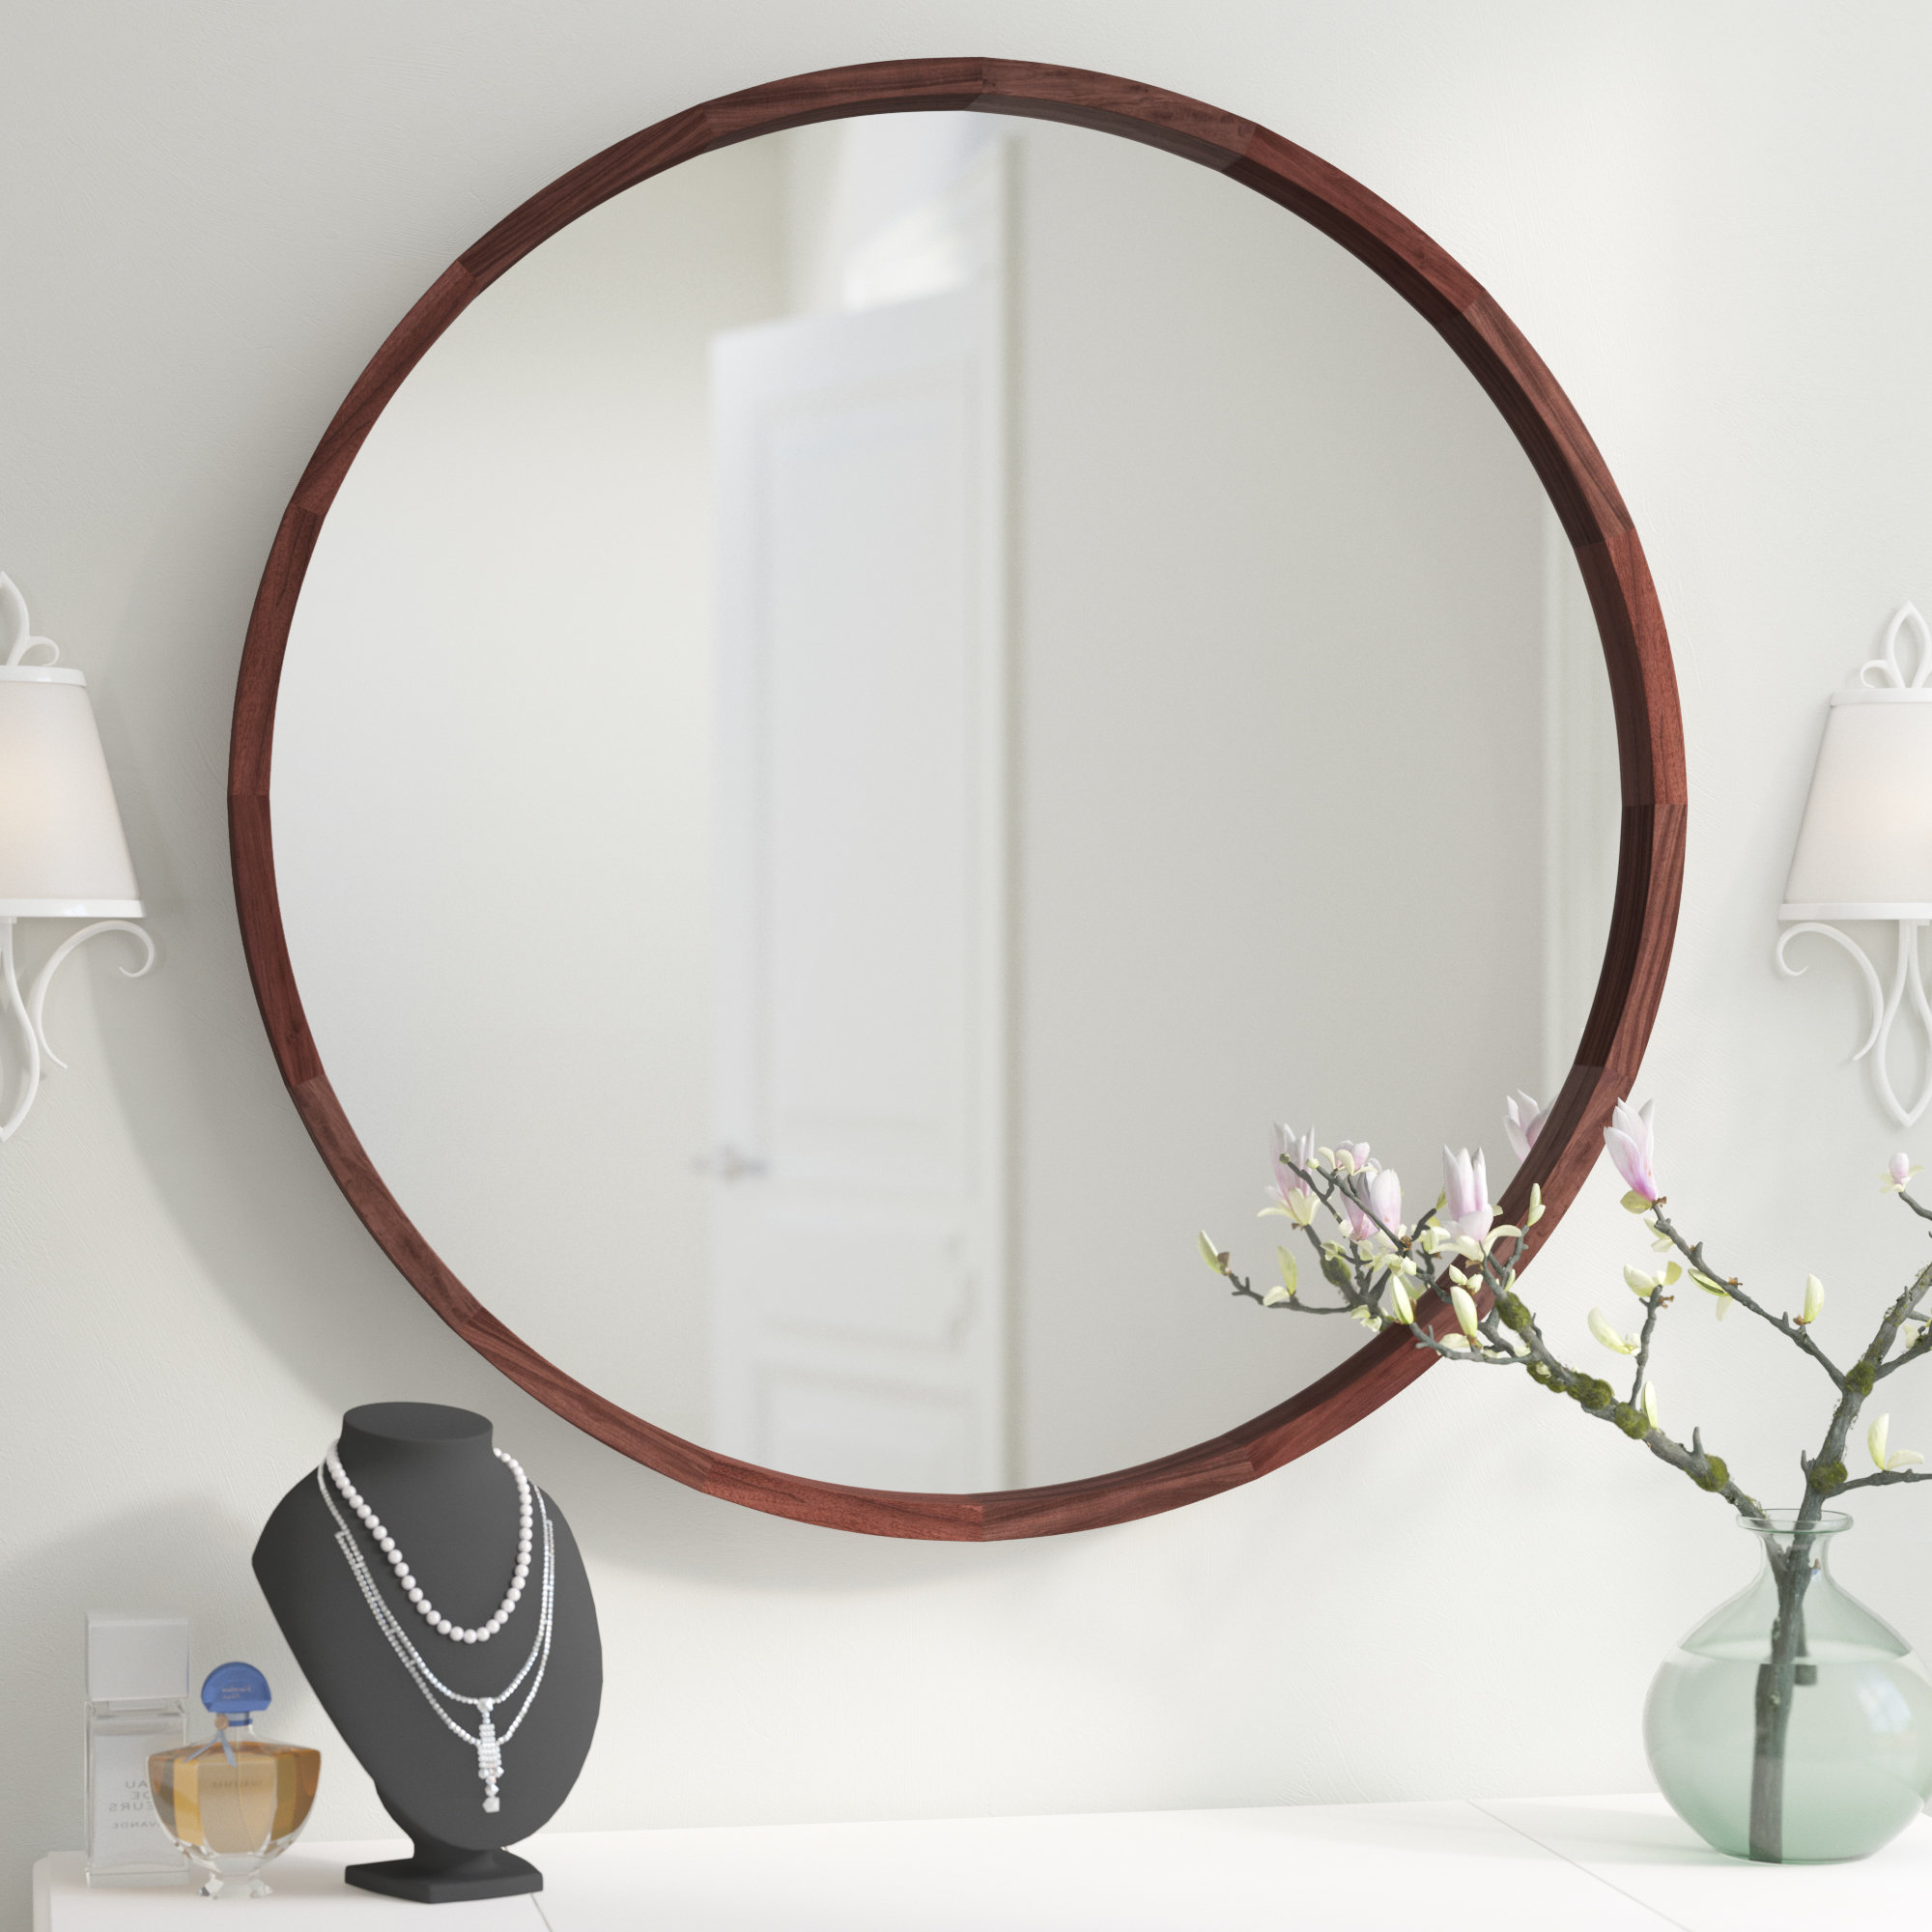 2019 Loftis Modern & Contemporary Accent Wall Mirror Intended For Colton Modern & Contemporary Wall Mirrors (Gallery 6 of 20)